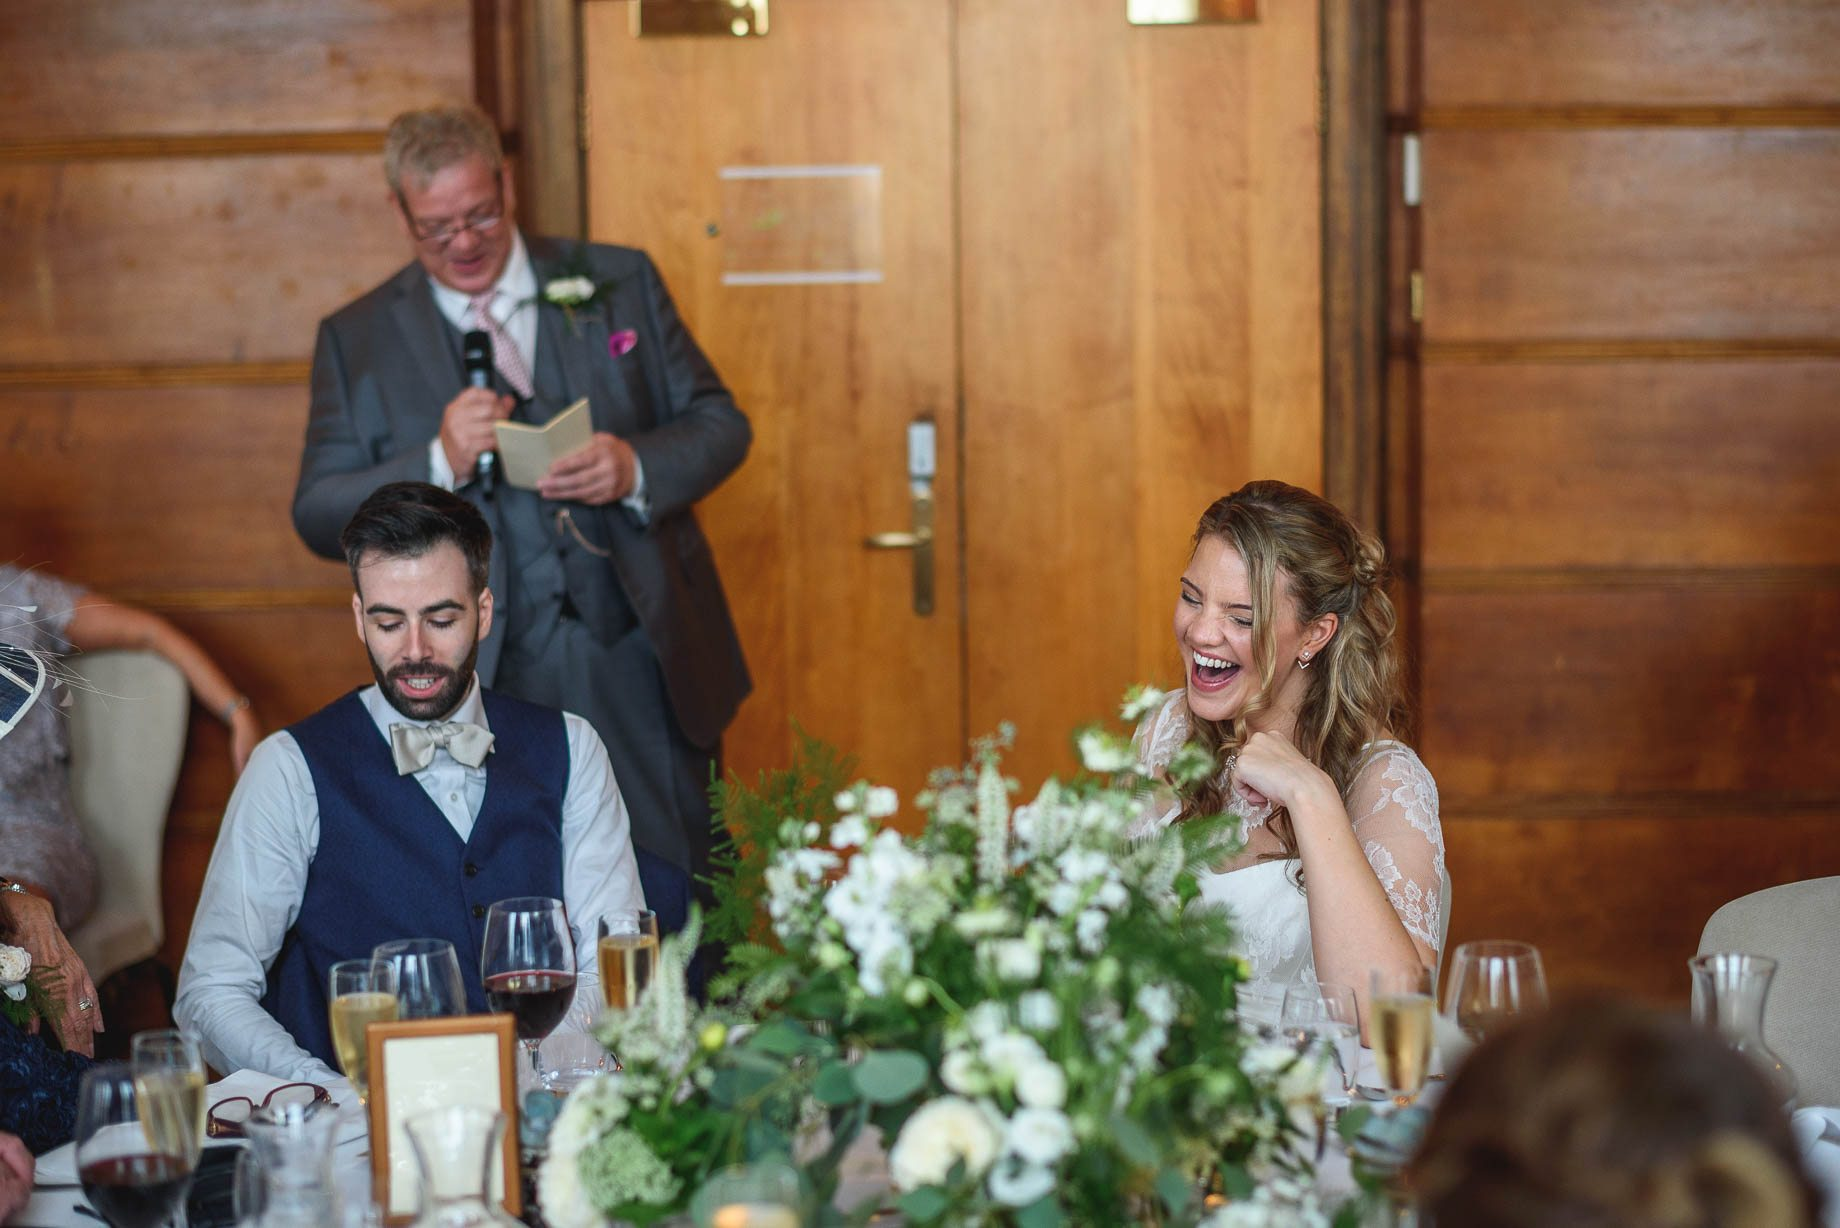 London Wedding Photography - Guy Collier Photography - LJ + Russell (109 of 155)